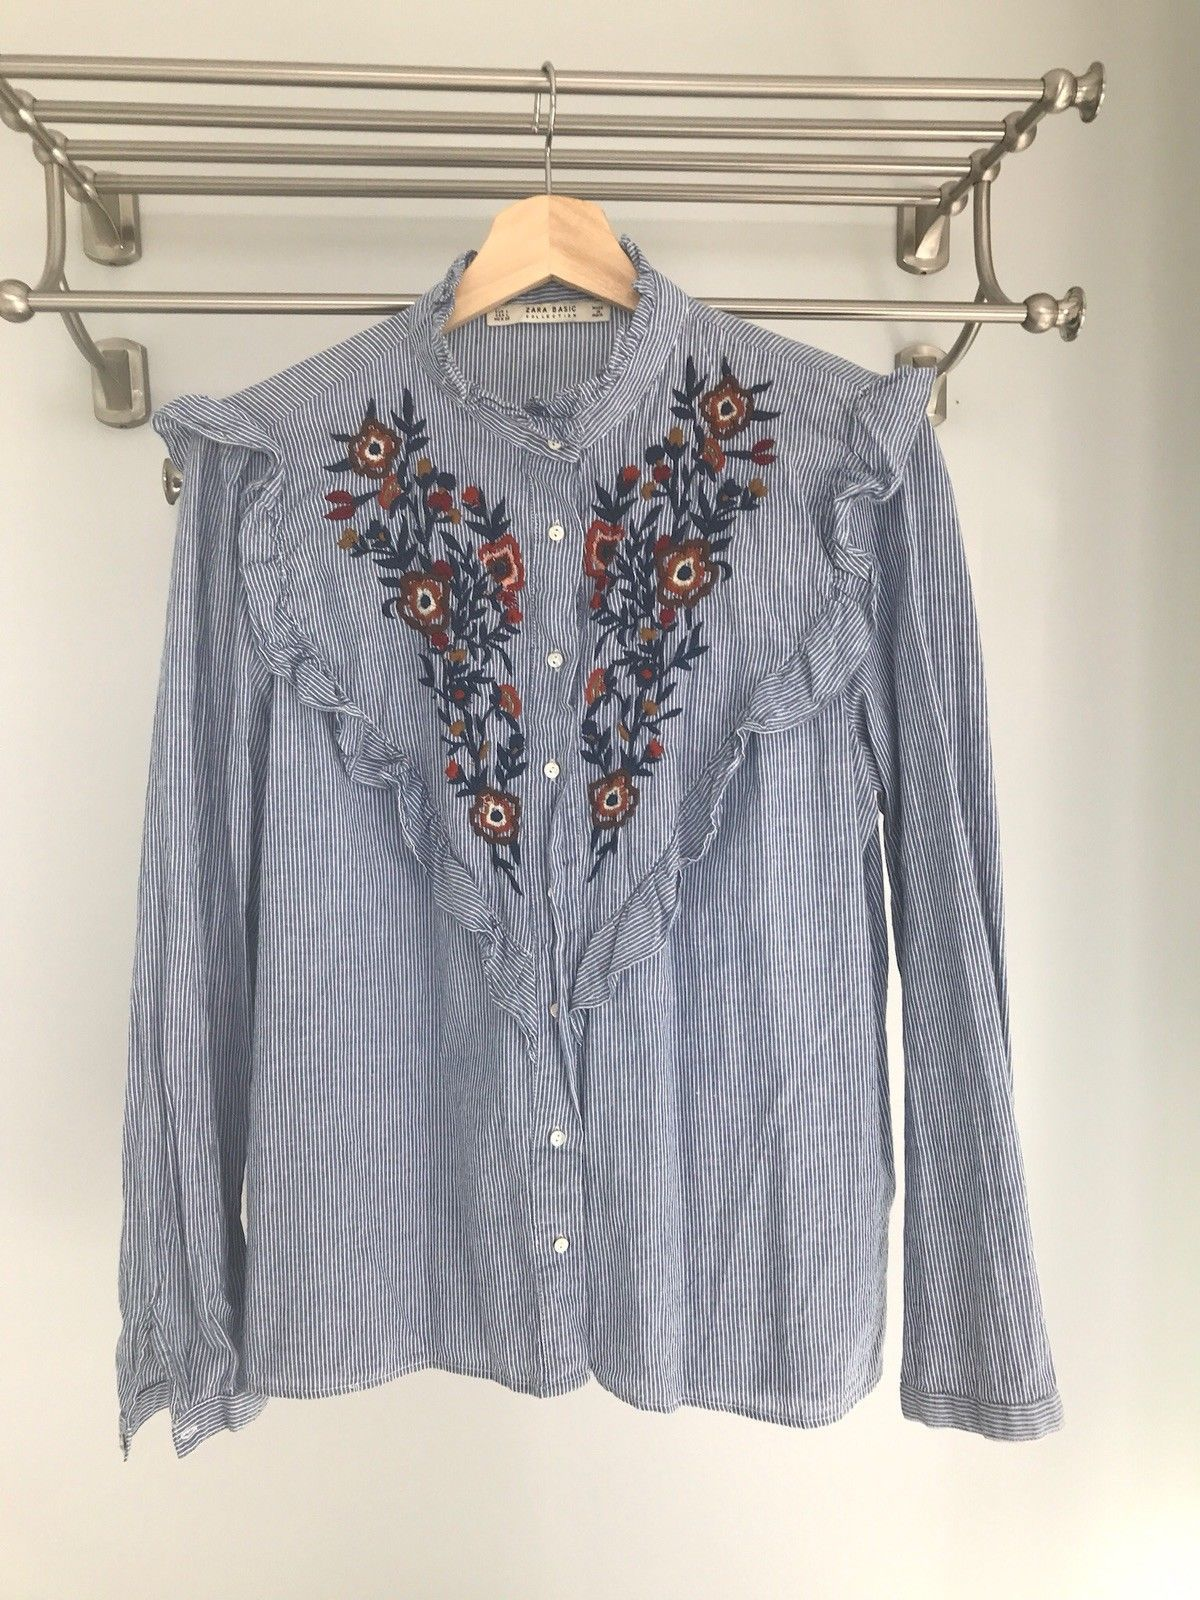 99fd53cfaec Zara blue and white stripe ruffle shirt with floral embroidery ...